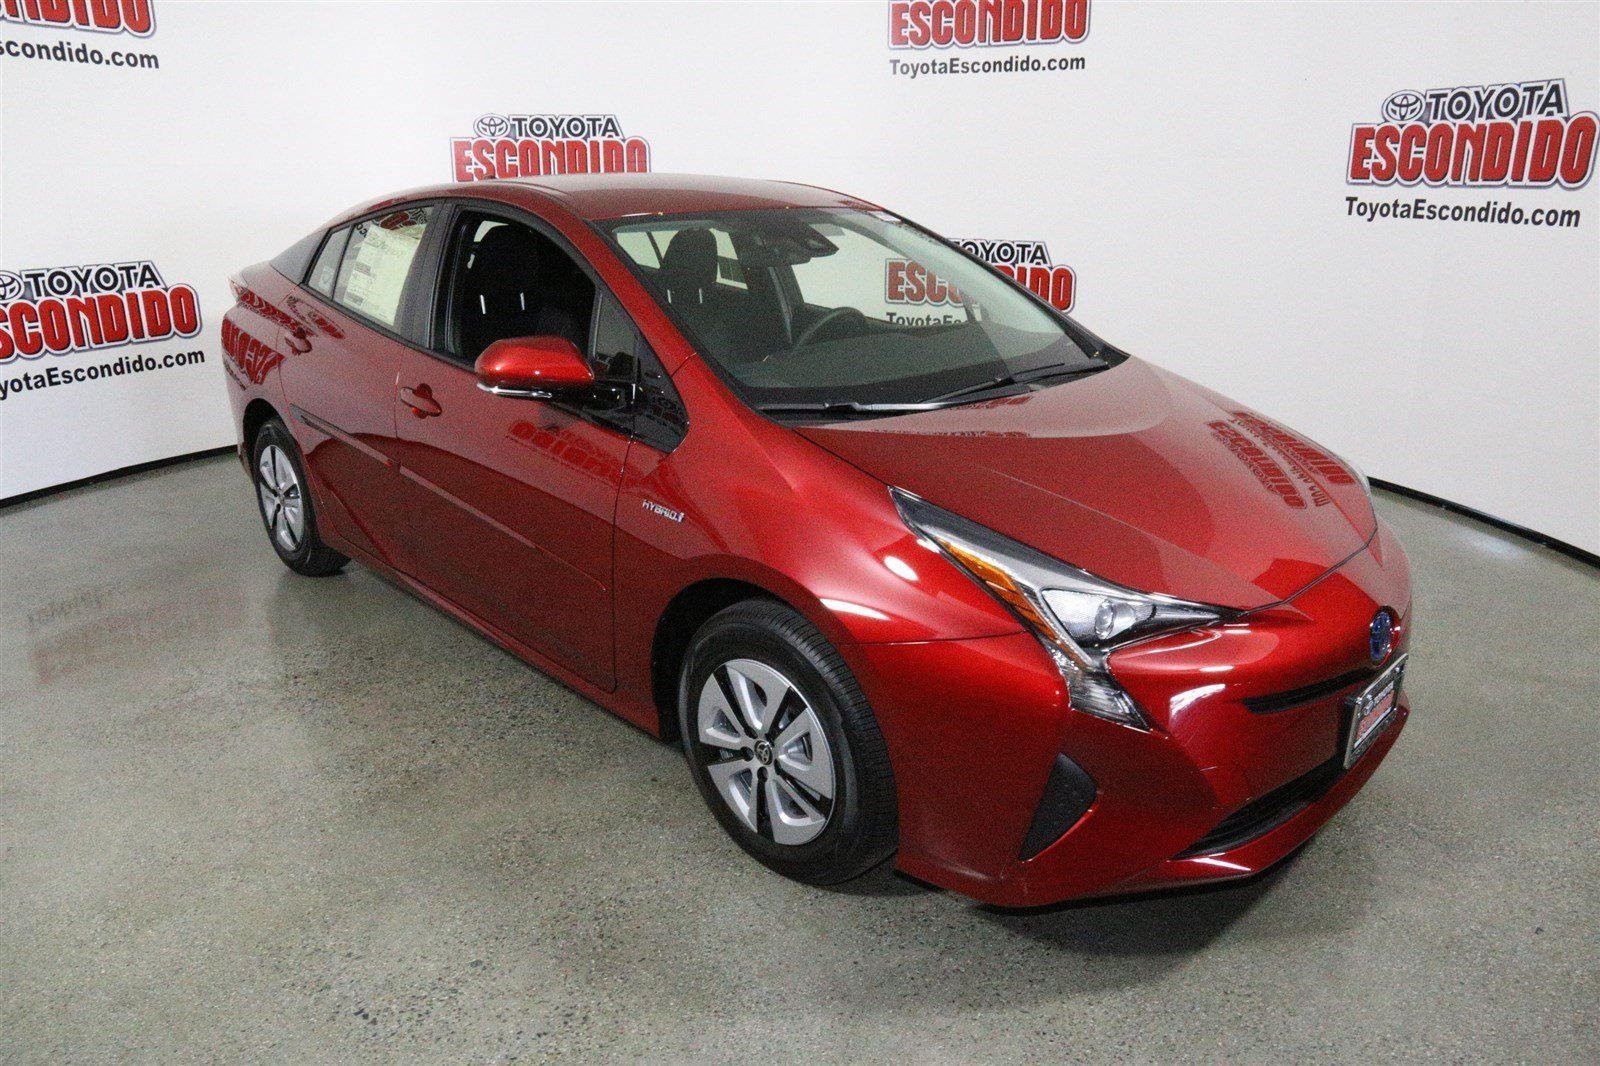 new 2017 toyota prius two eco hatchback in escondido 1014117 toyota escondido. Black Bedroom Furniture Sets. Home Design Ideas